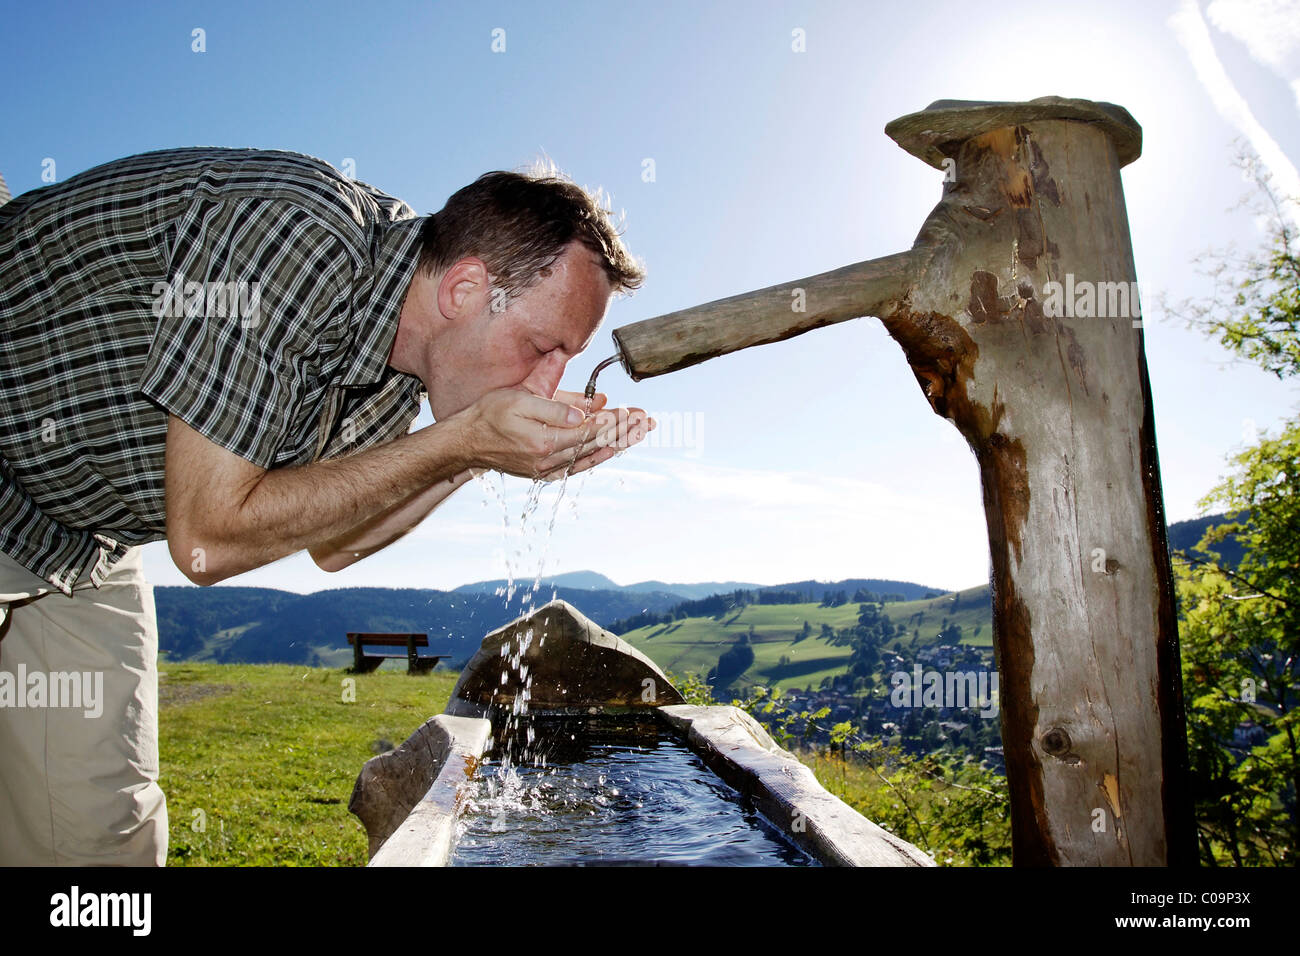 A man in his mid 40 quenches his thirst at a well, Todtnauberg in the Black Forest, Baden-Wuerttemberg, Germany, Stock Photo